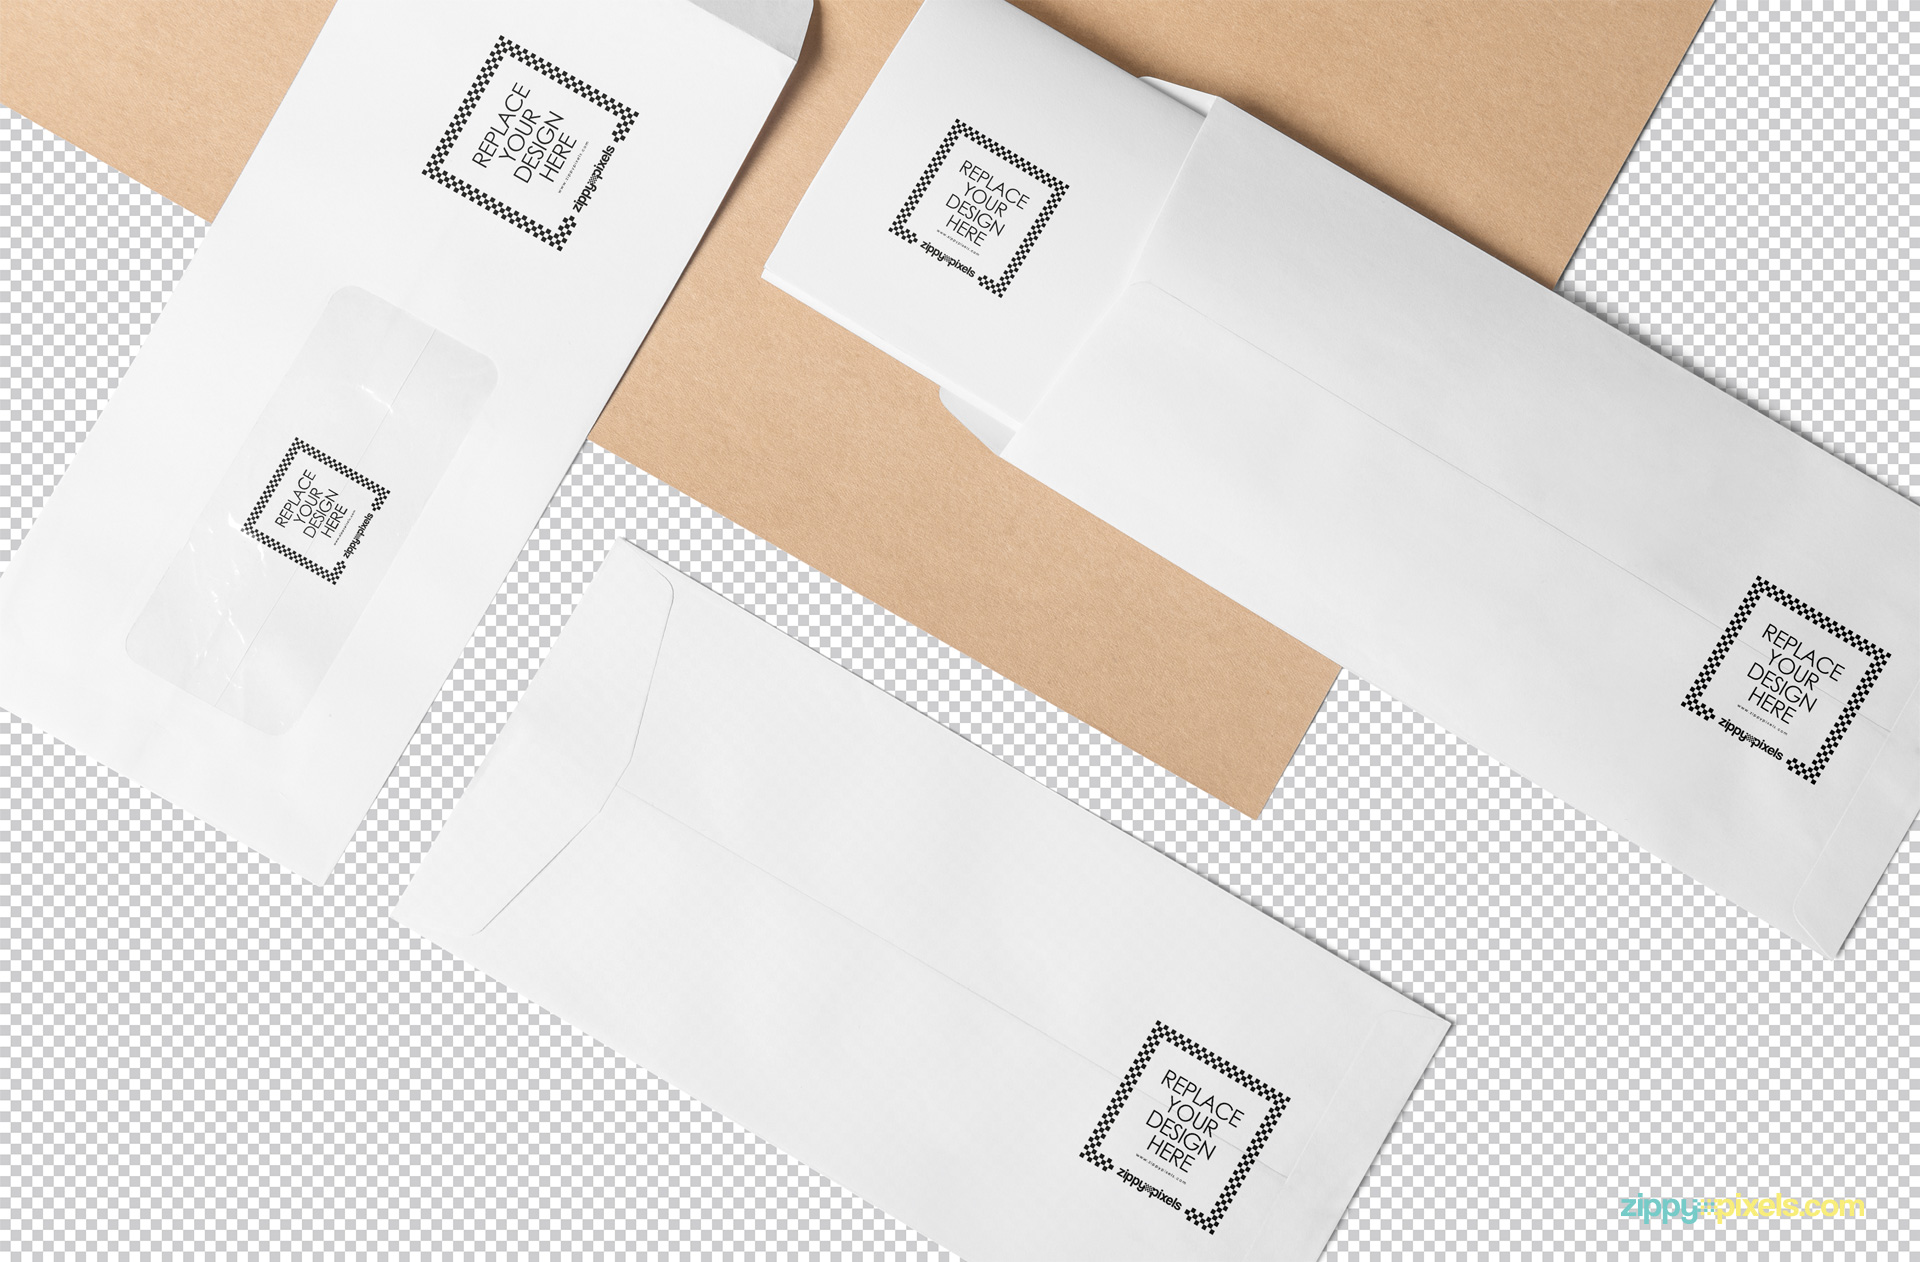 Three plain envelopes isolated with the greyscale background.